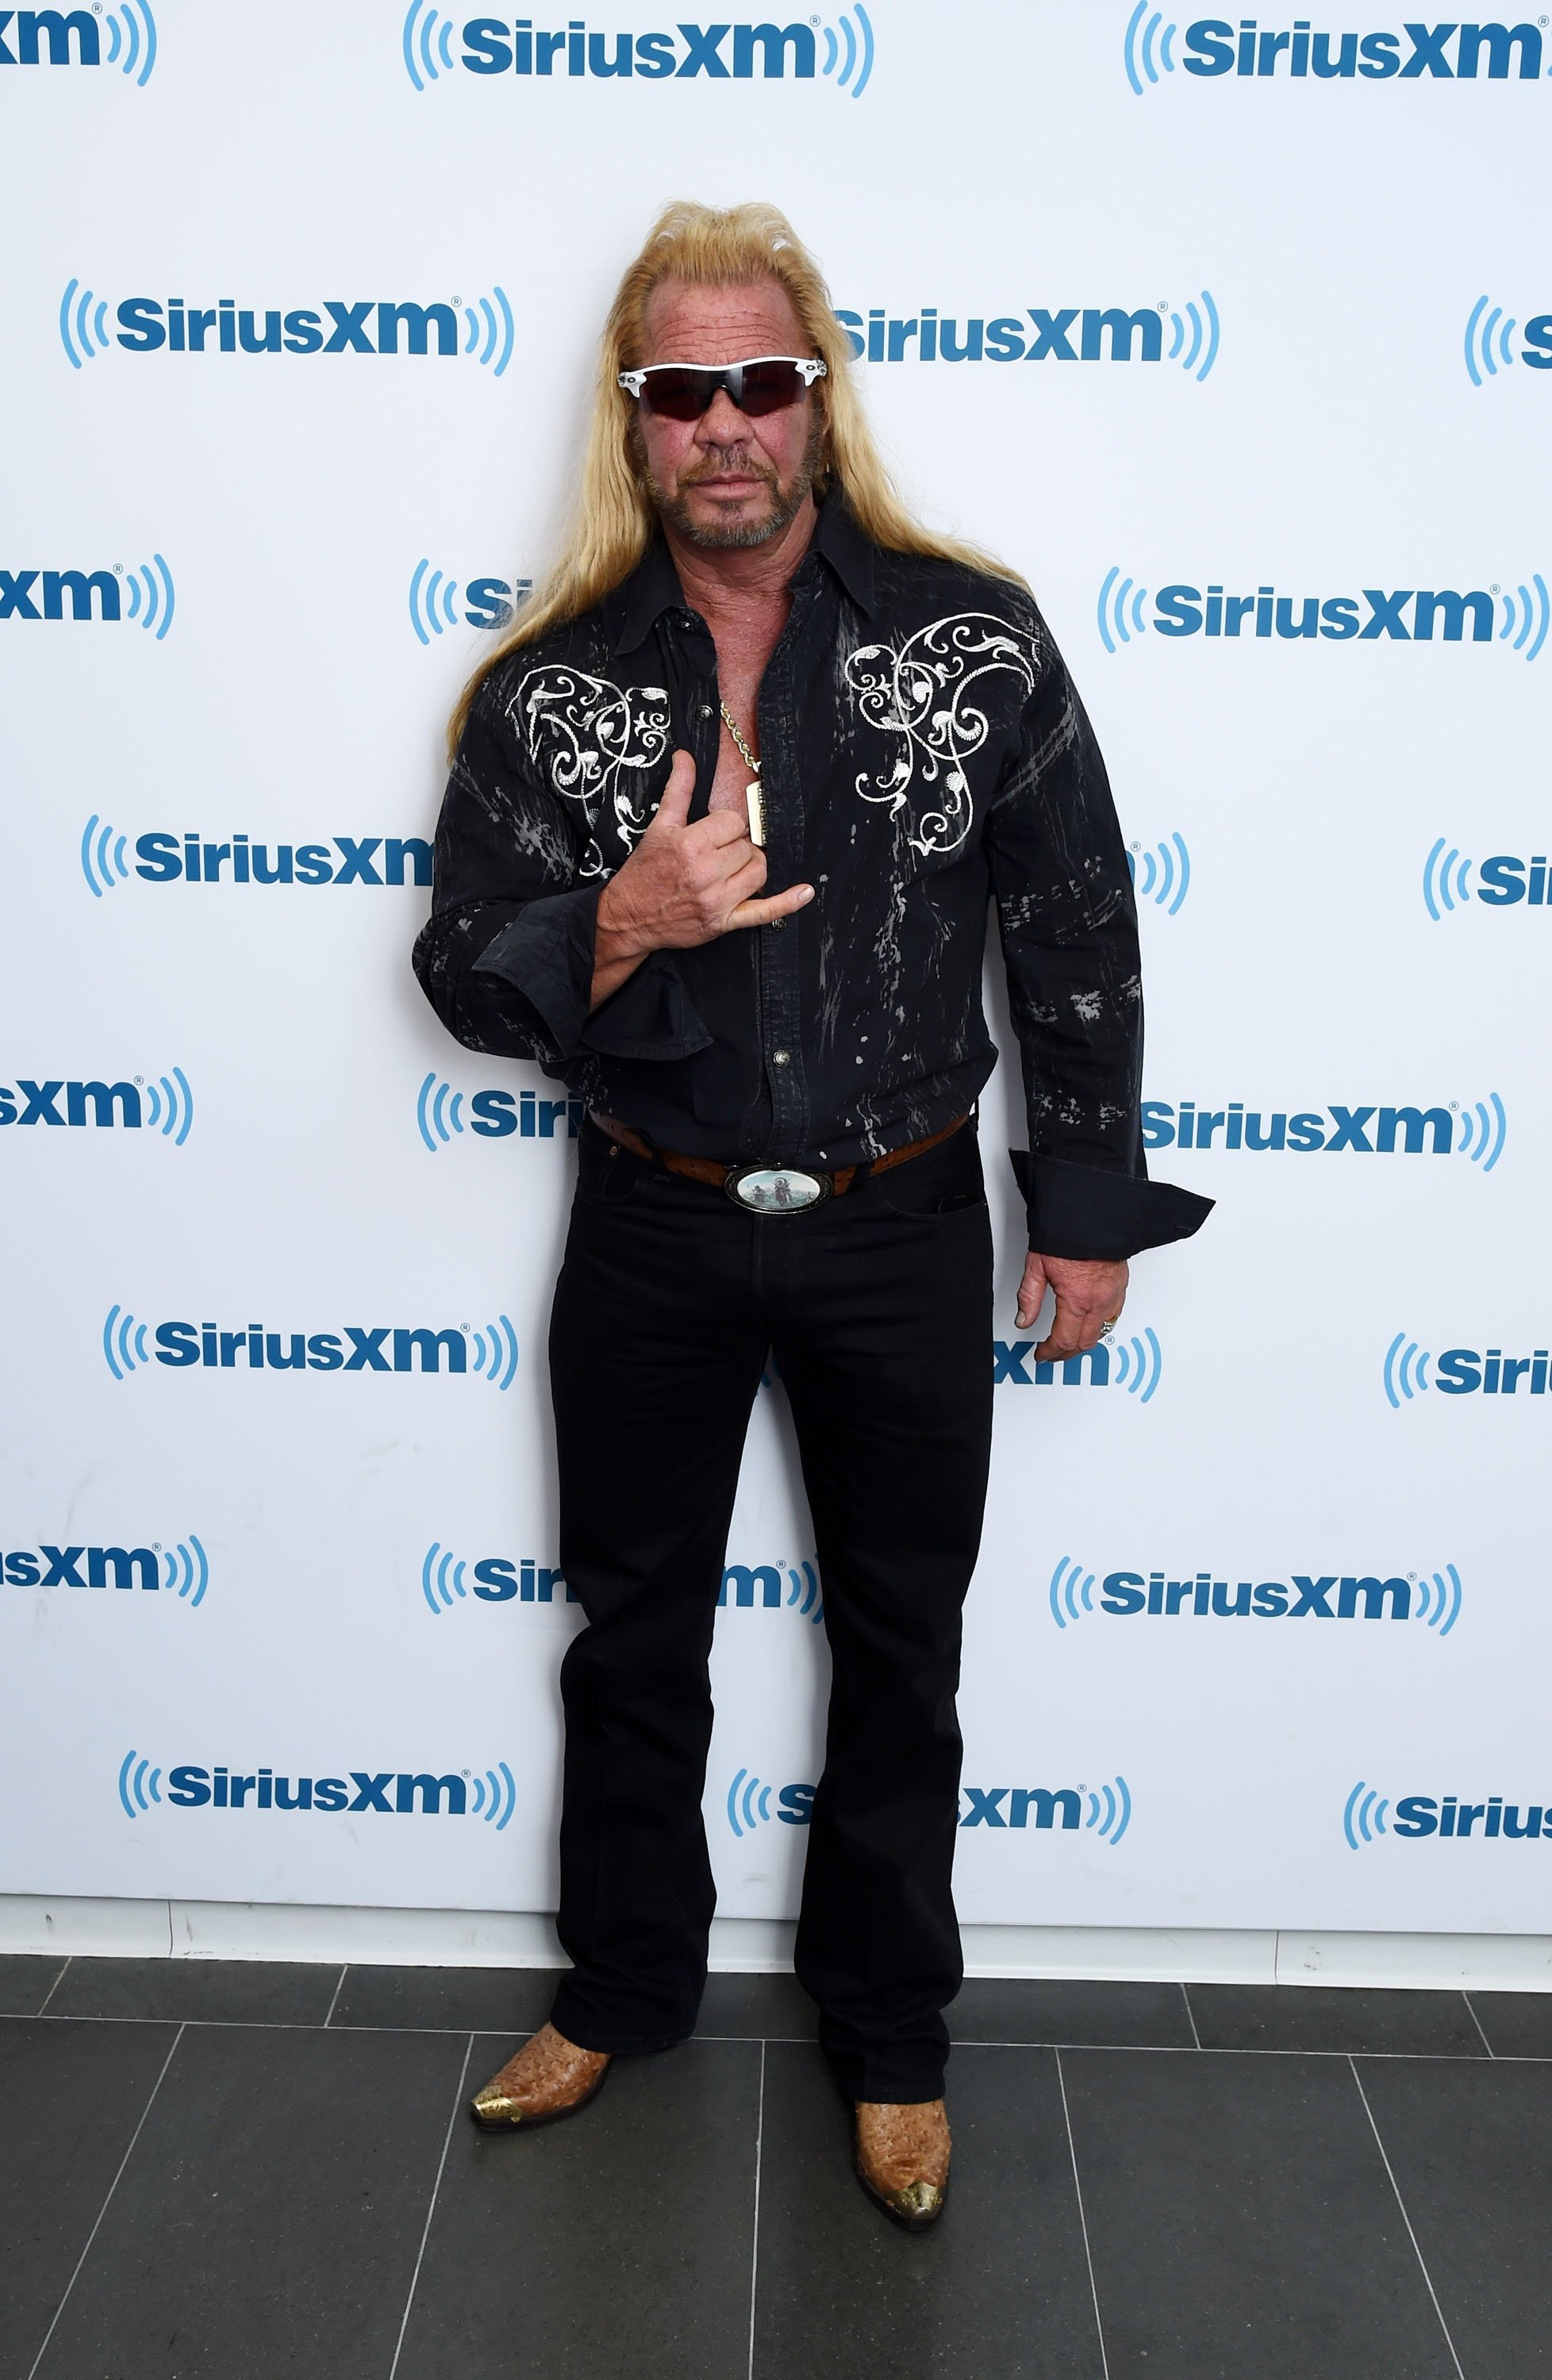 Duane Chapman visits the SiriusXM Studios in New York City on April 24, 2015 | Photo: Getty Images